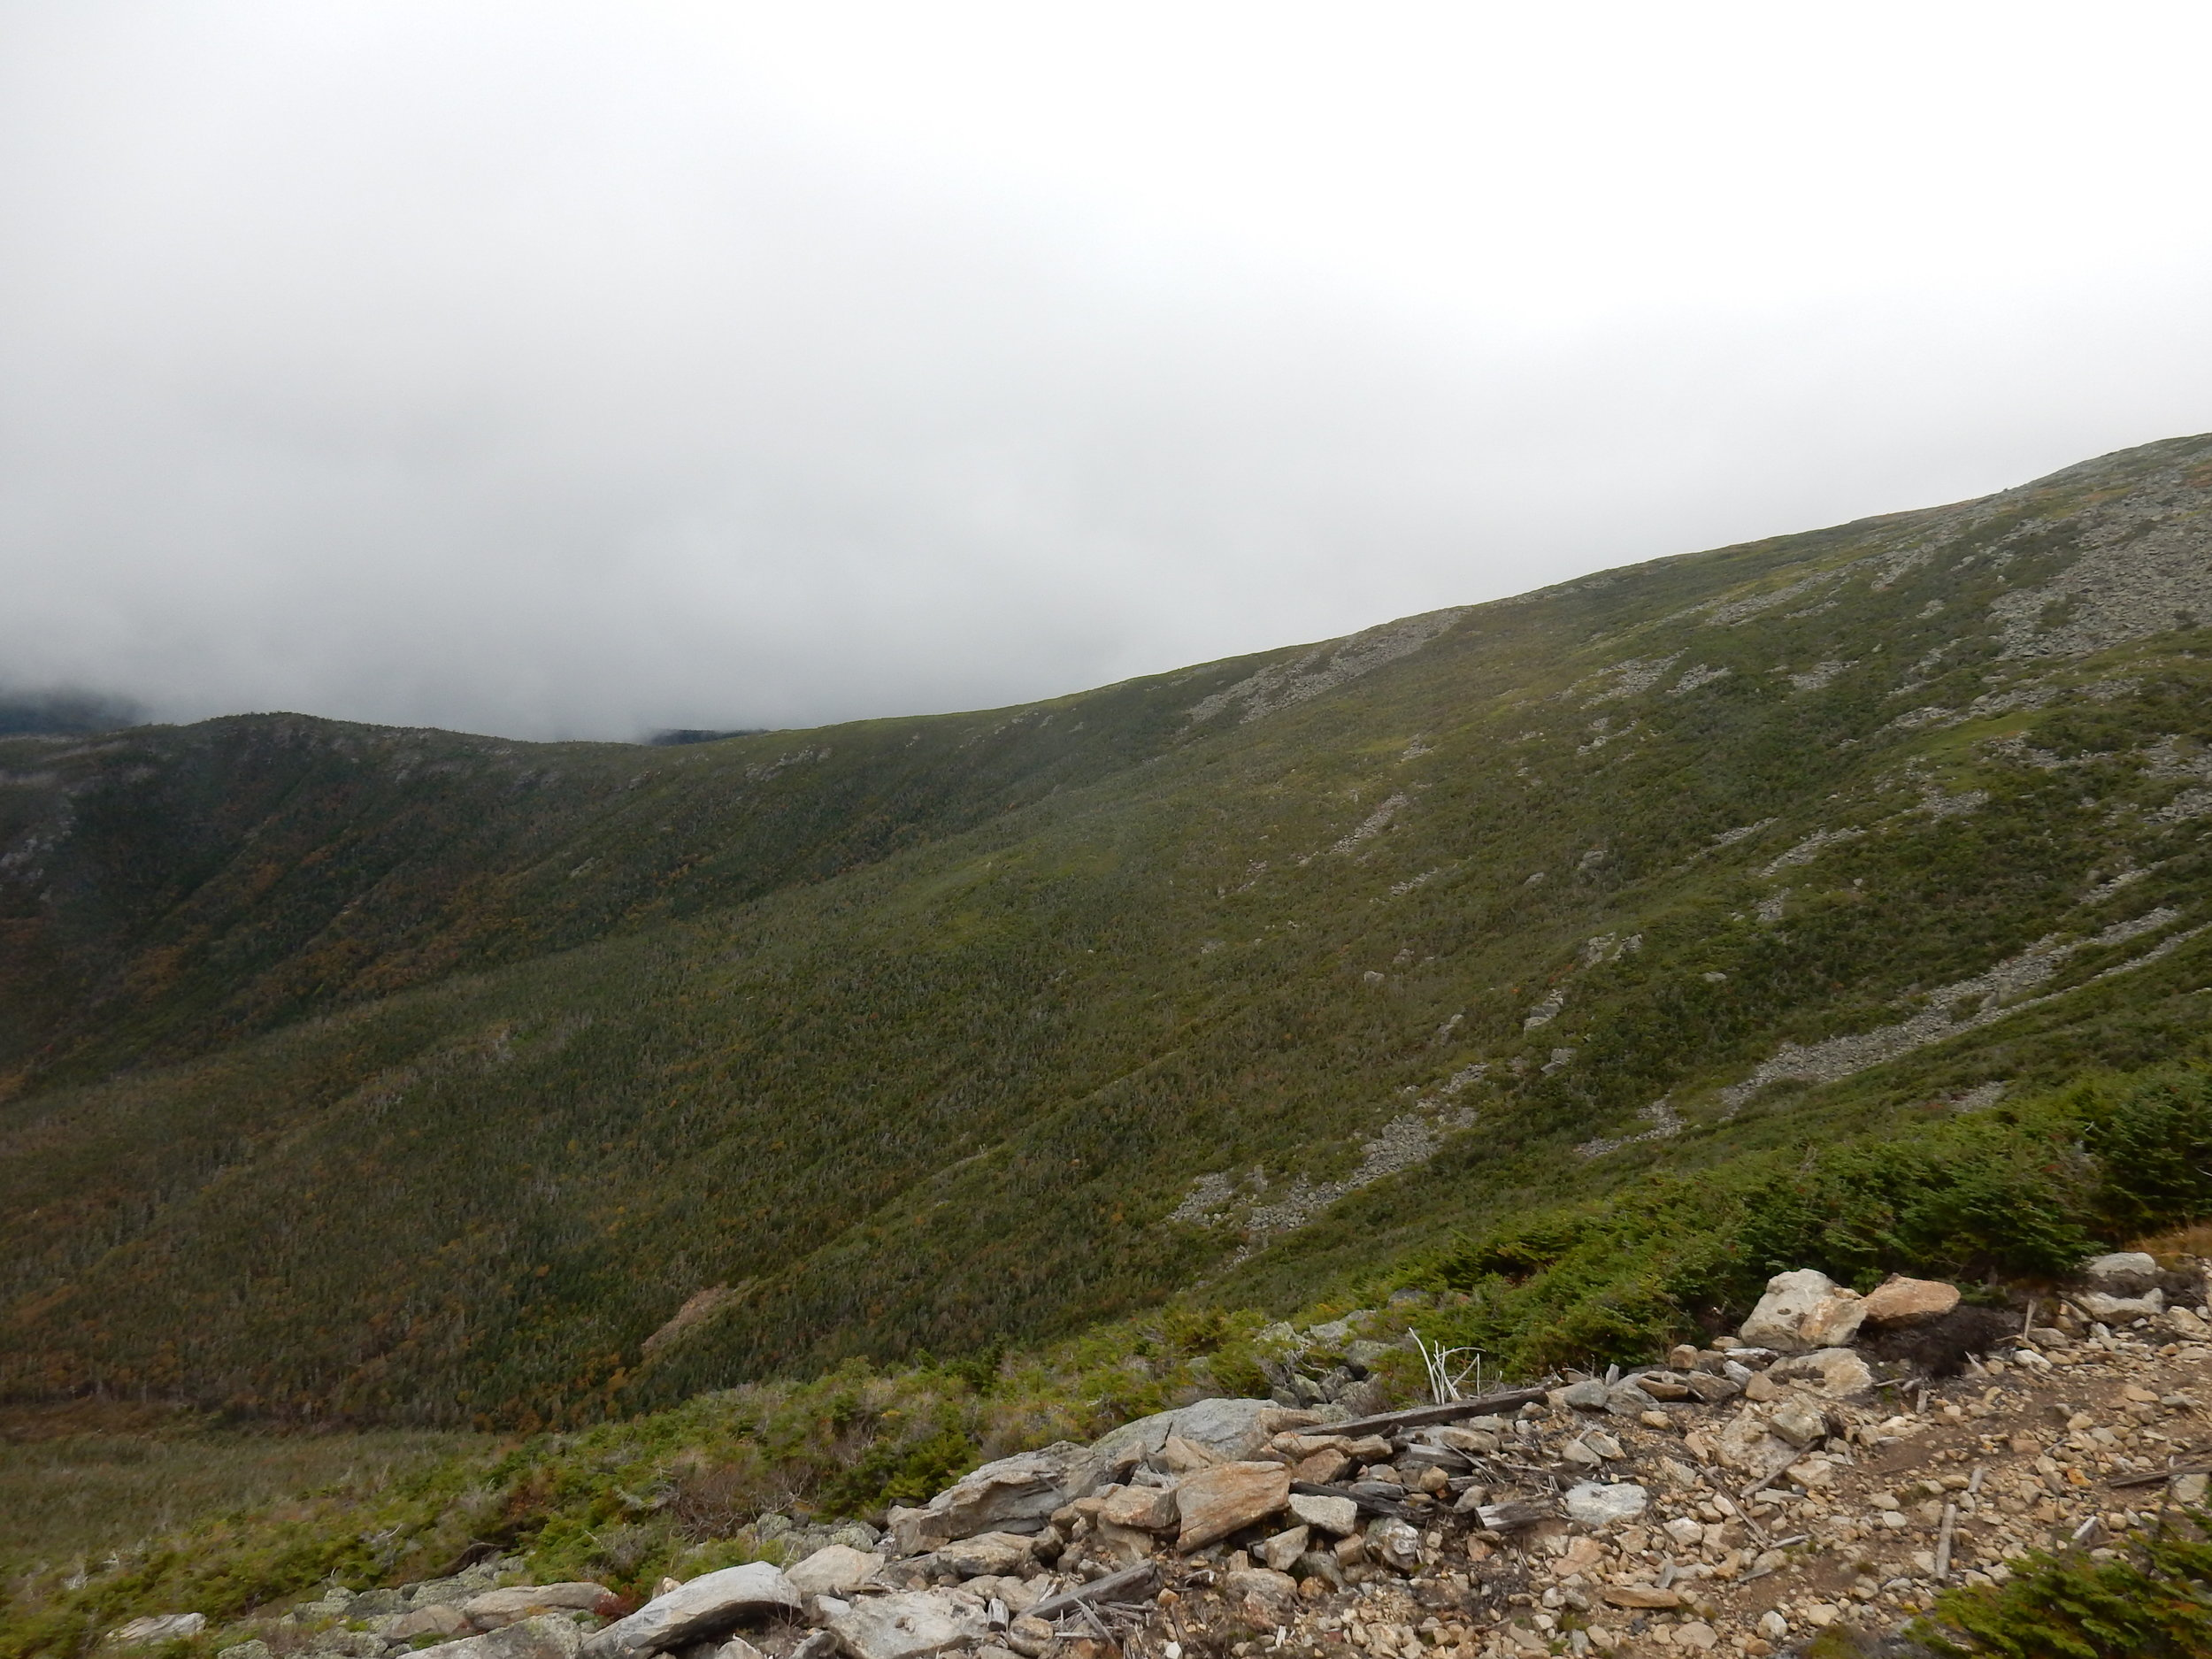 From the top of Mount Washington. The mountain is in the clouds three hundred days a year. If you catch it on a clear day you can see a hundred miles in every direction.